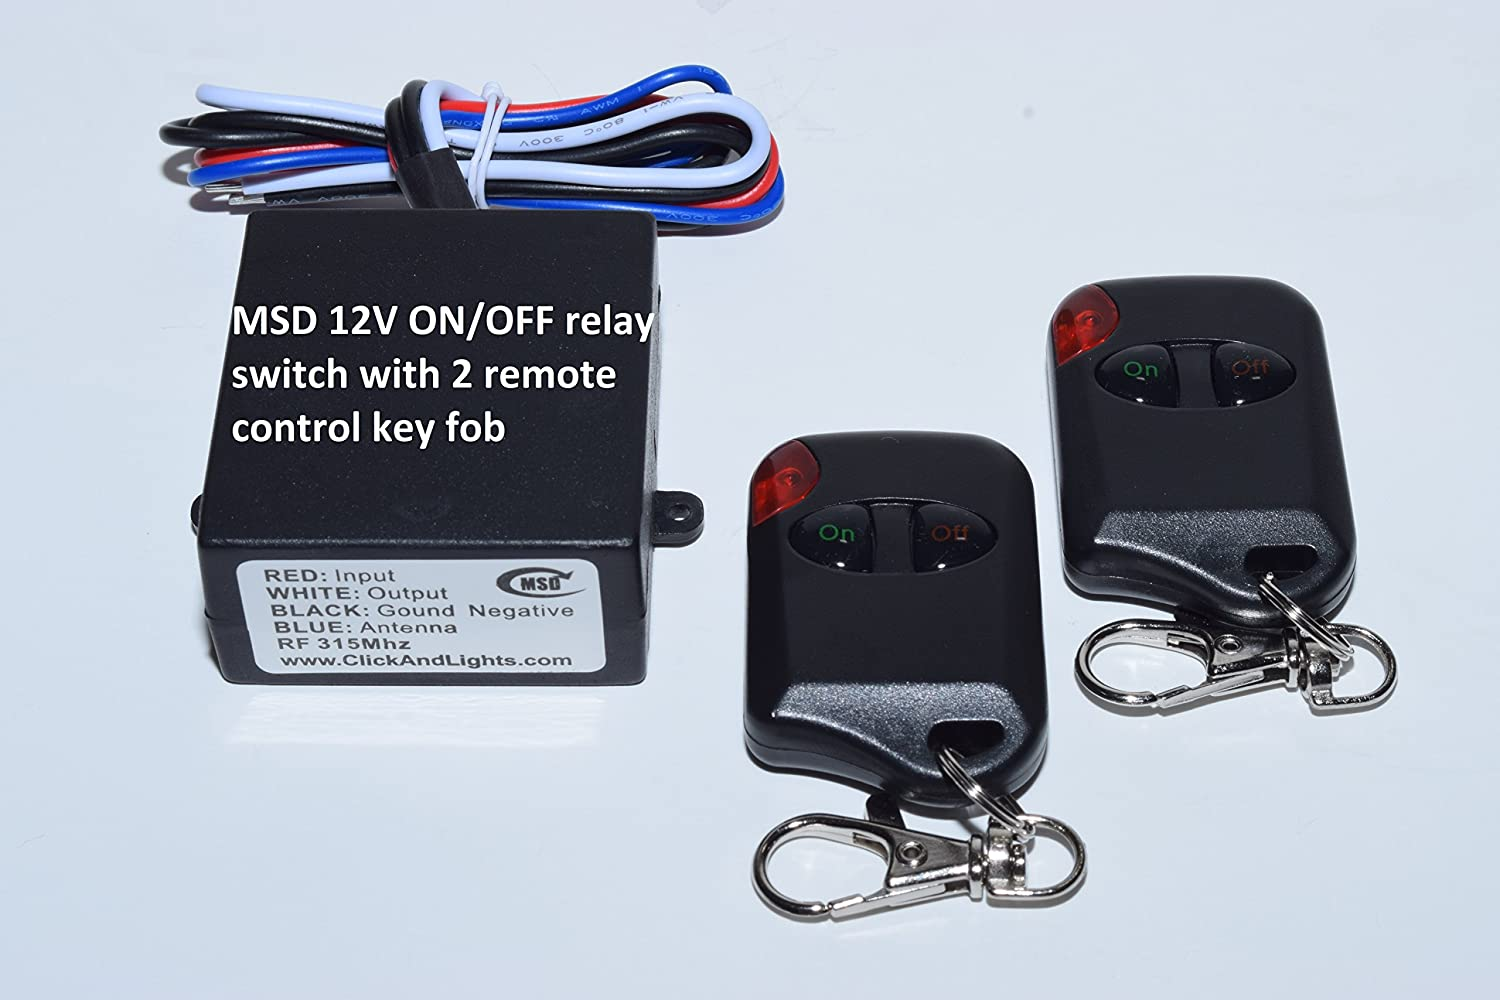 Msd 12v On Off Relay Switch With 2 Wireless Remote Control Key Fob Everything Else